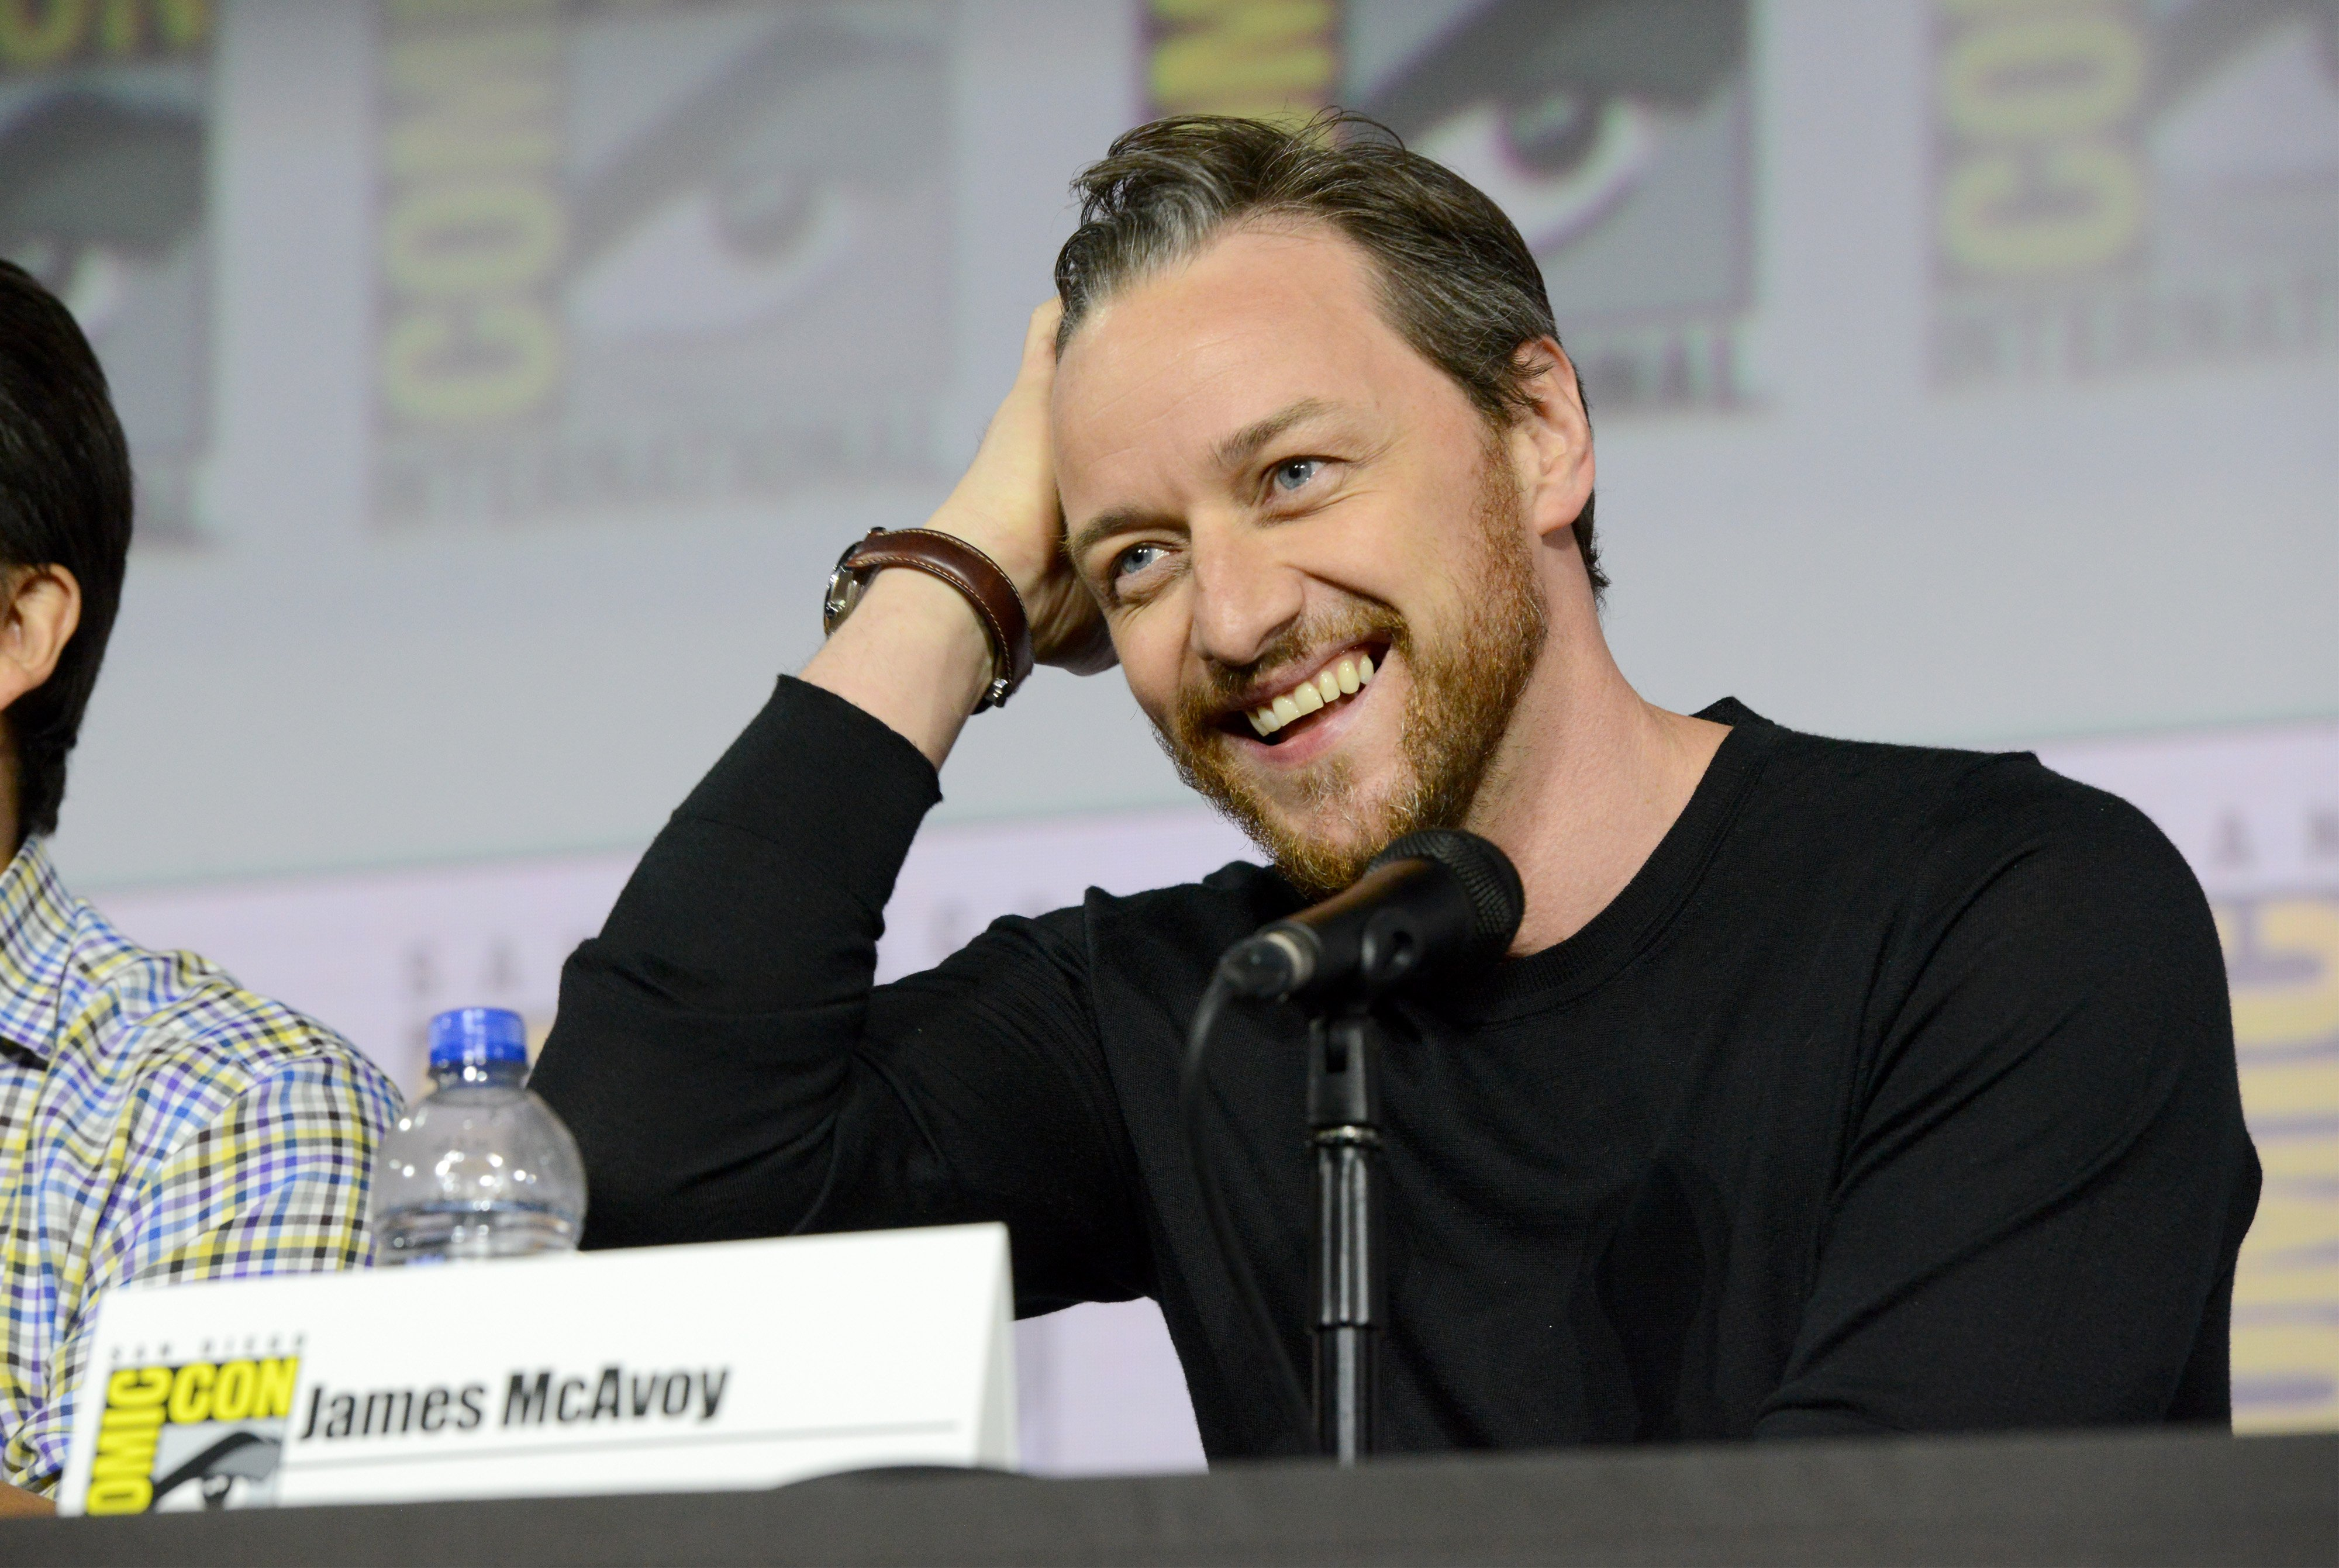 """James McAvoy at """"His Dark Materials"""" Comic Con autograph signing on July 18, 2019 in San Diego, California. 